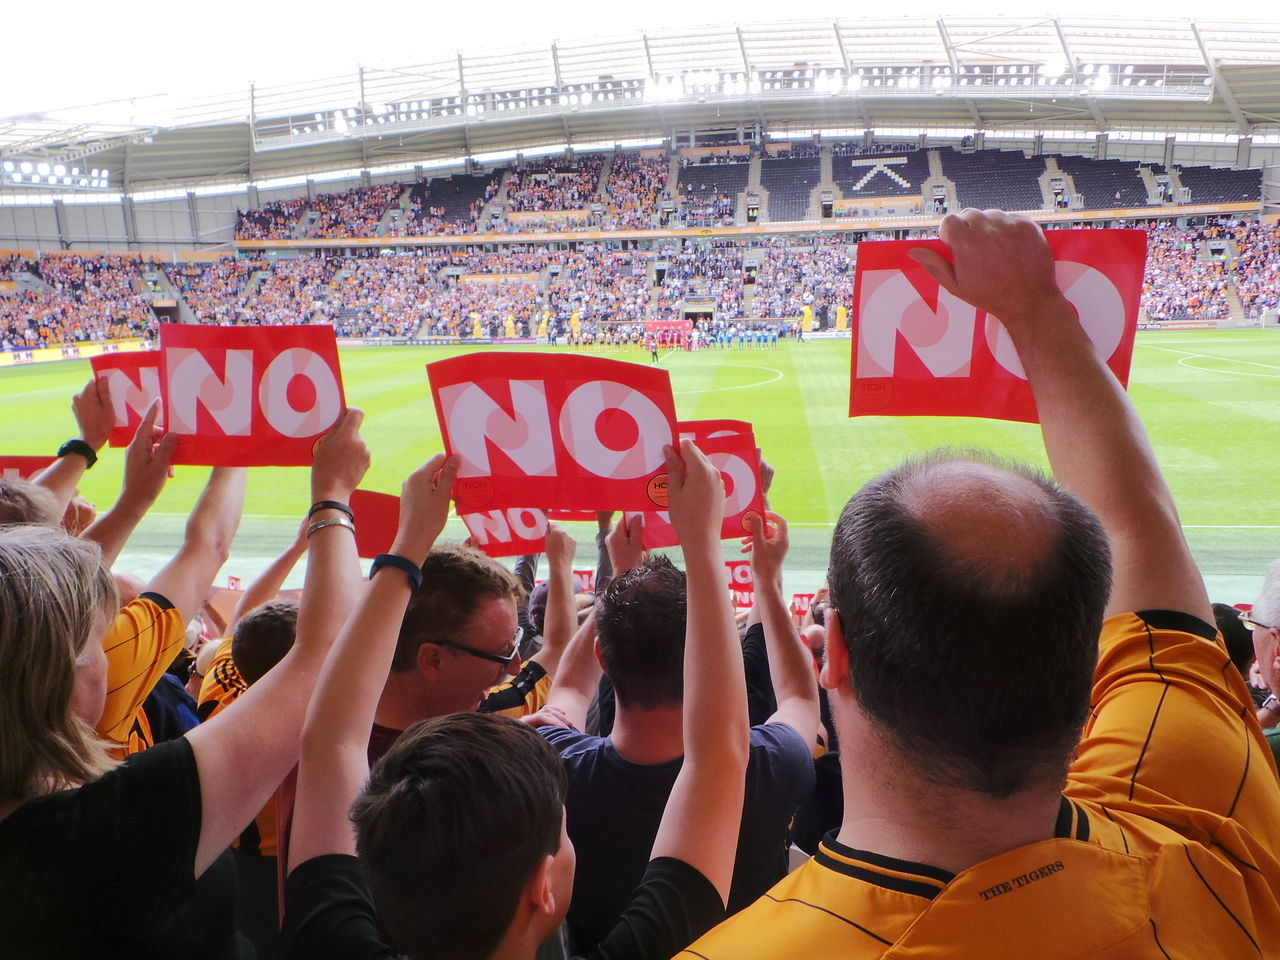 Hull City fans protest at the club owners (the Allams) imposition of a membership scheme which discriminates against children, OAPs and the disabled Adult Adults Only AllamOut Crowd Day Football Hull 2017 Hull City Hull City Of Culture 2017 Hull2017 KCOM Stadium Nature Outdoors People Placards Protecting Where We Play Protest Signs Soccer Stadium